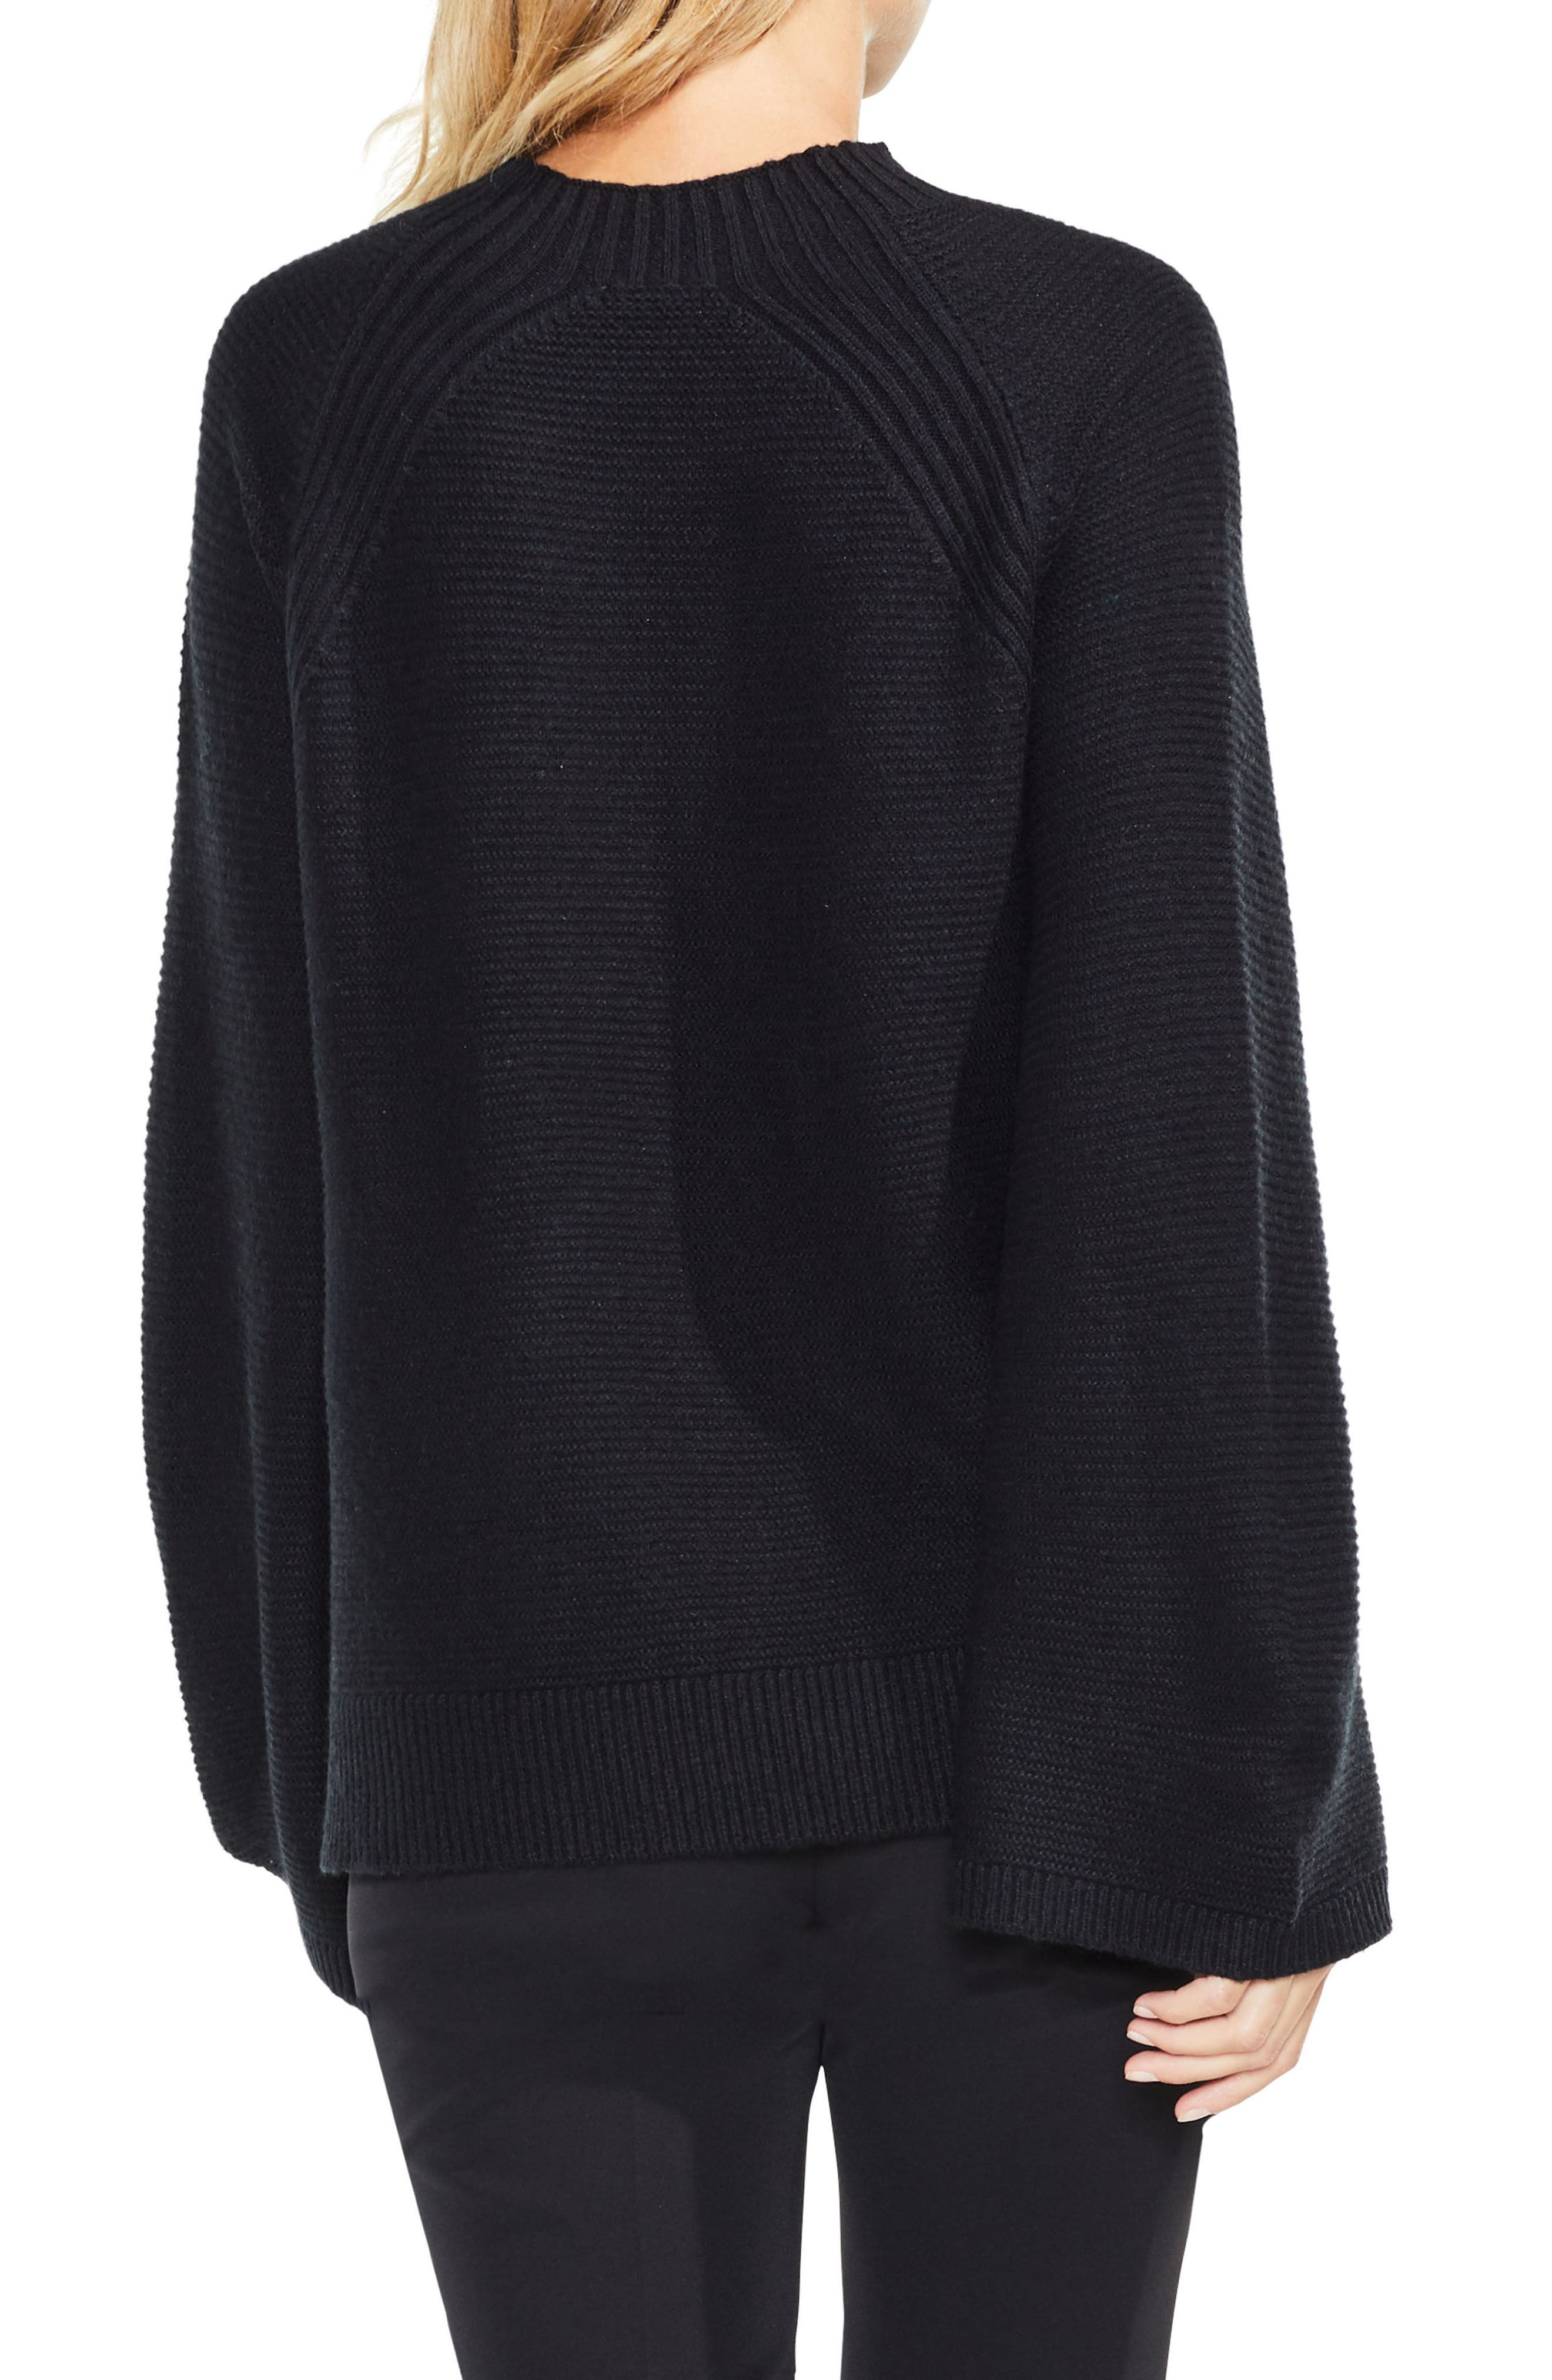 Bell Sleeve Sweater,                             Alternate thumbnail 2, color,                             006